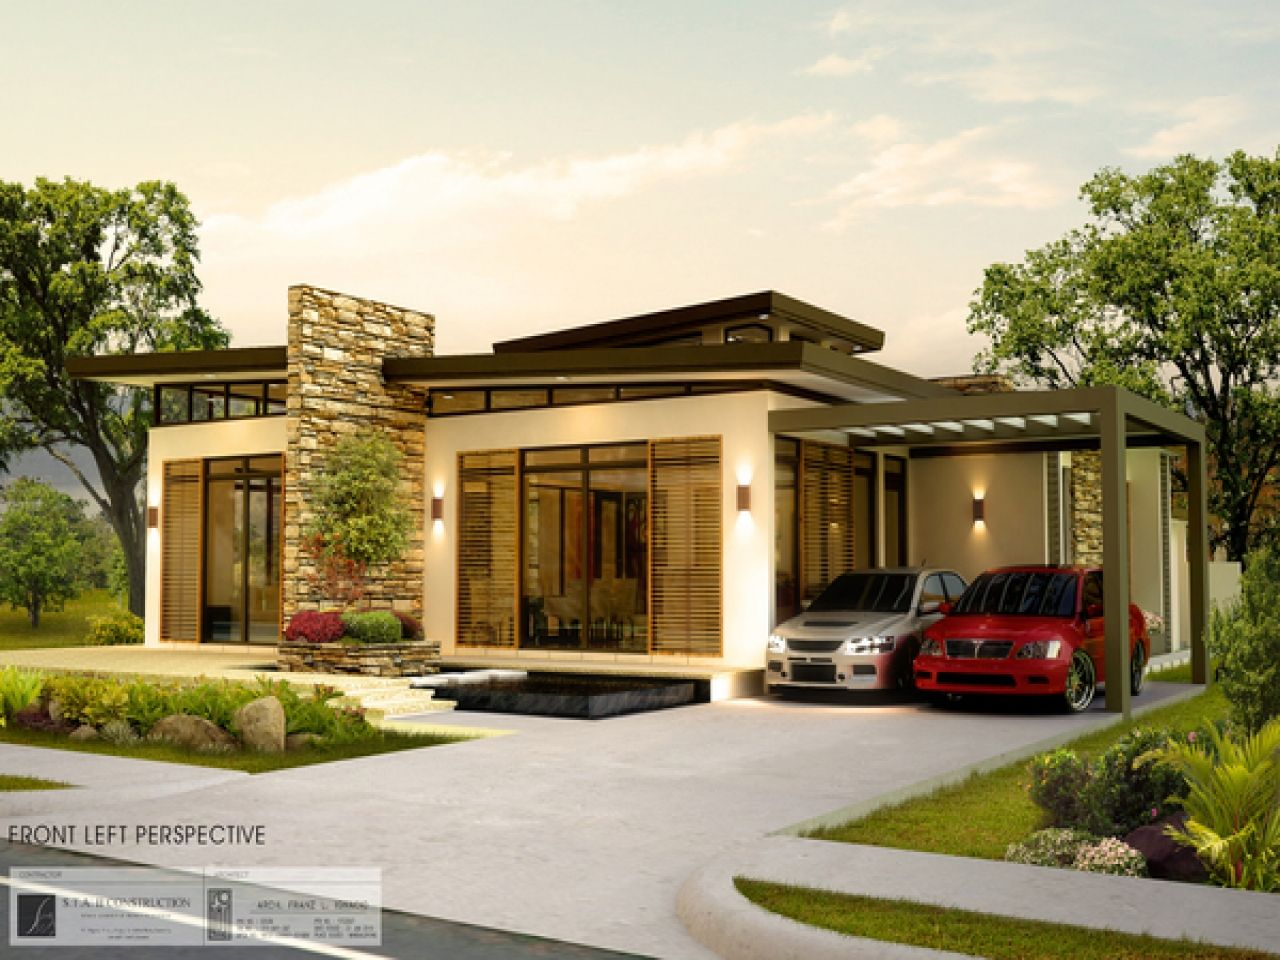 Home design best bungalow designs modern bungalow house designs philippines best bungalow house design in the philippines best house interior design